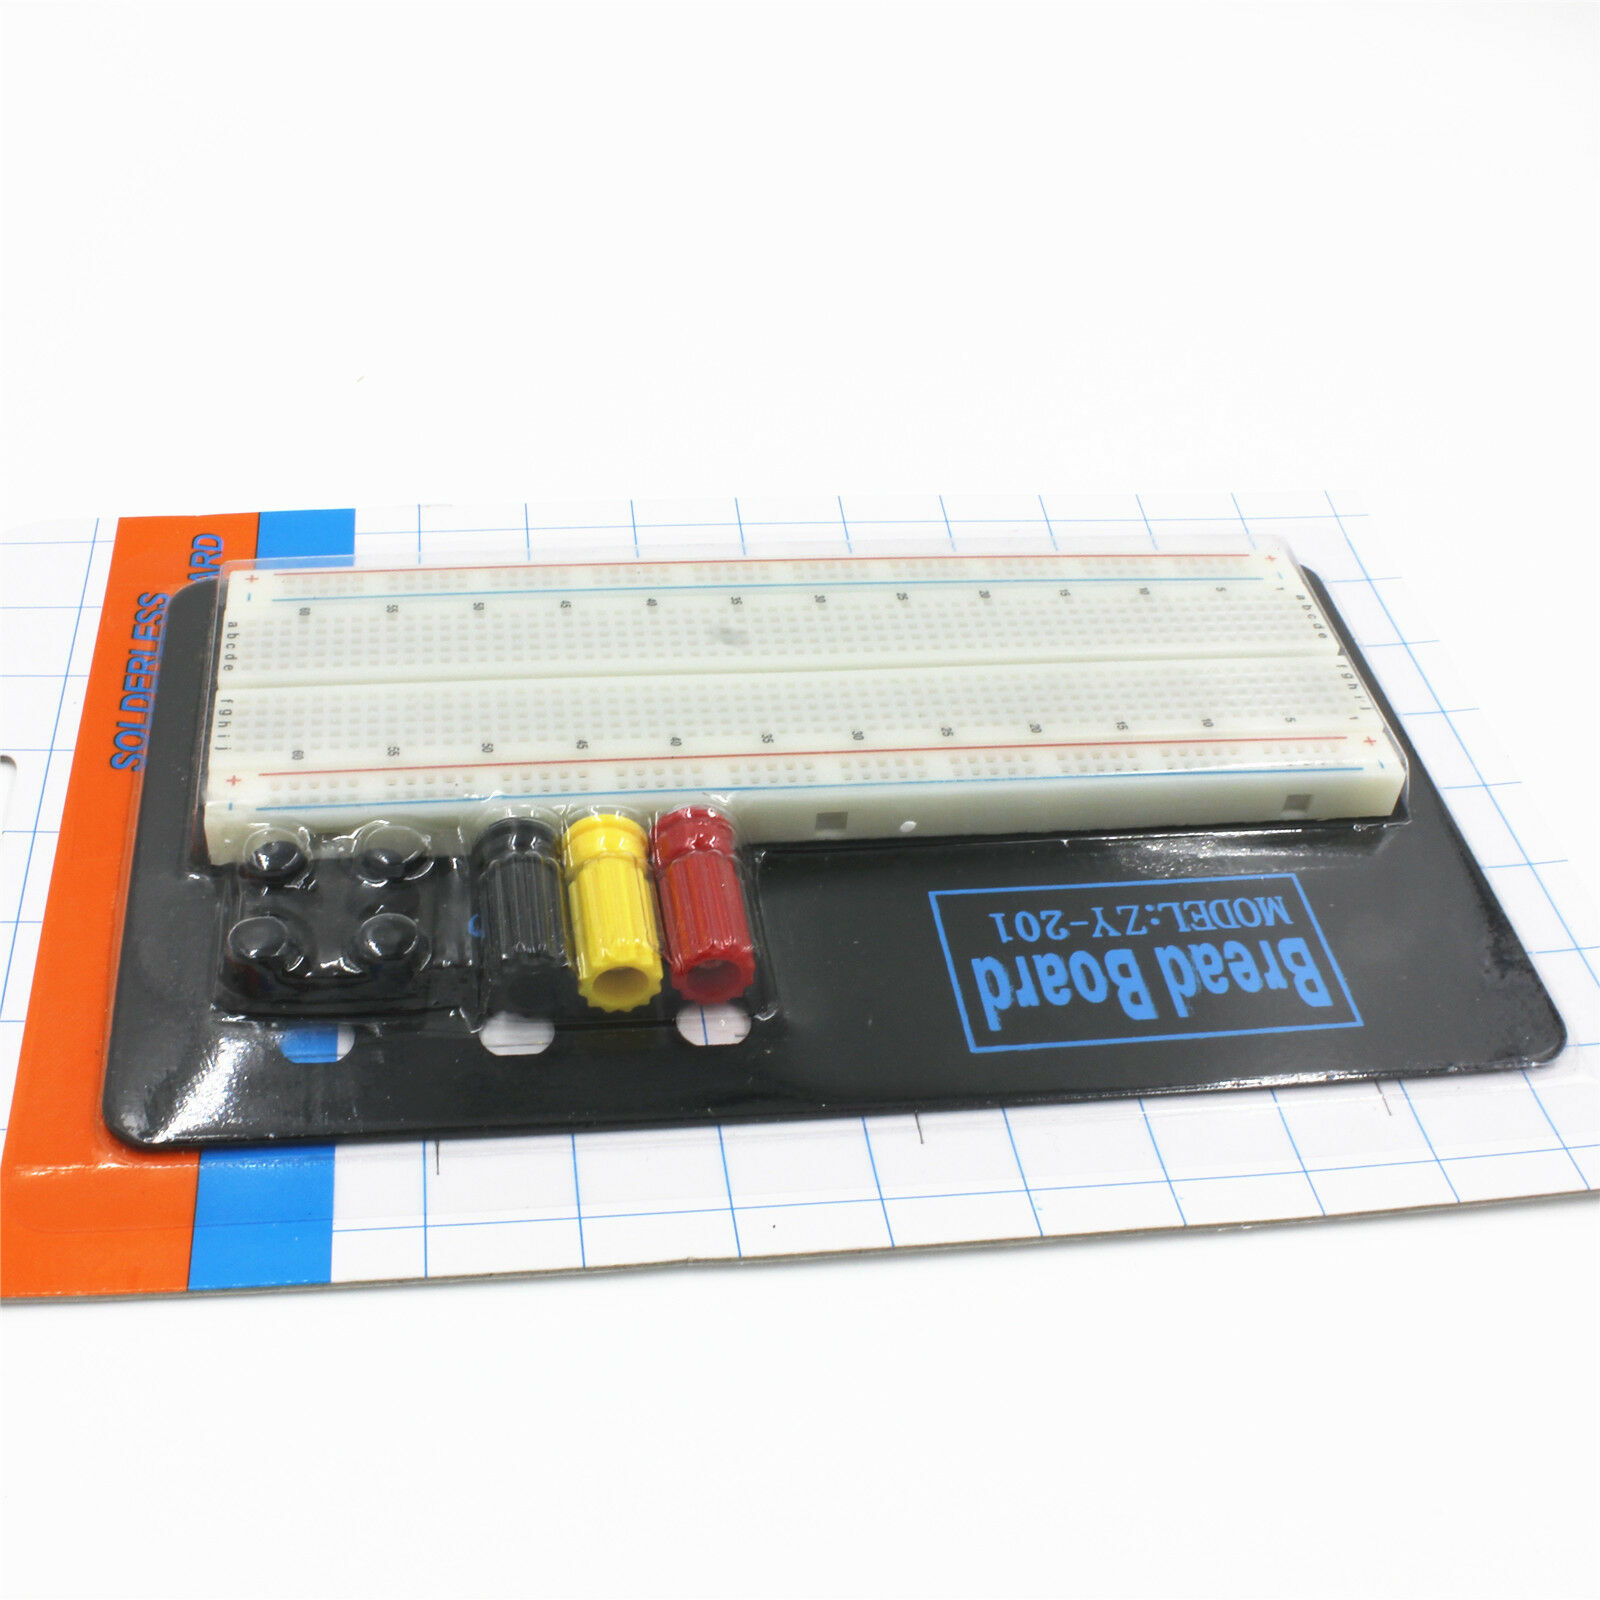 ZY-201 830 Tie Point Electronic Circuit PCB Board Solderless Breadboard